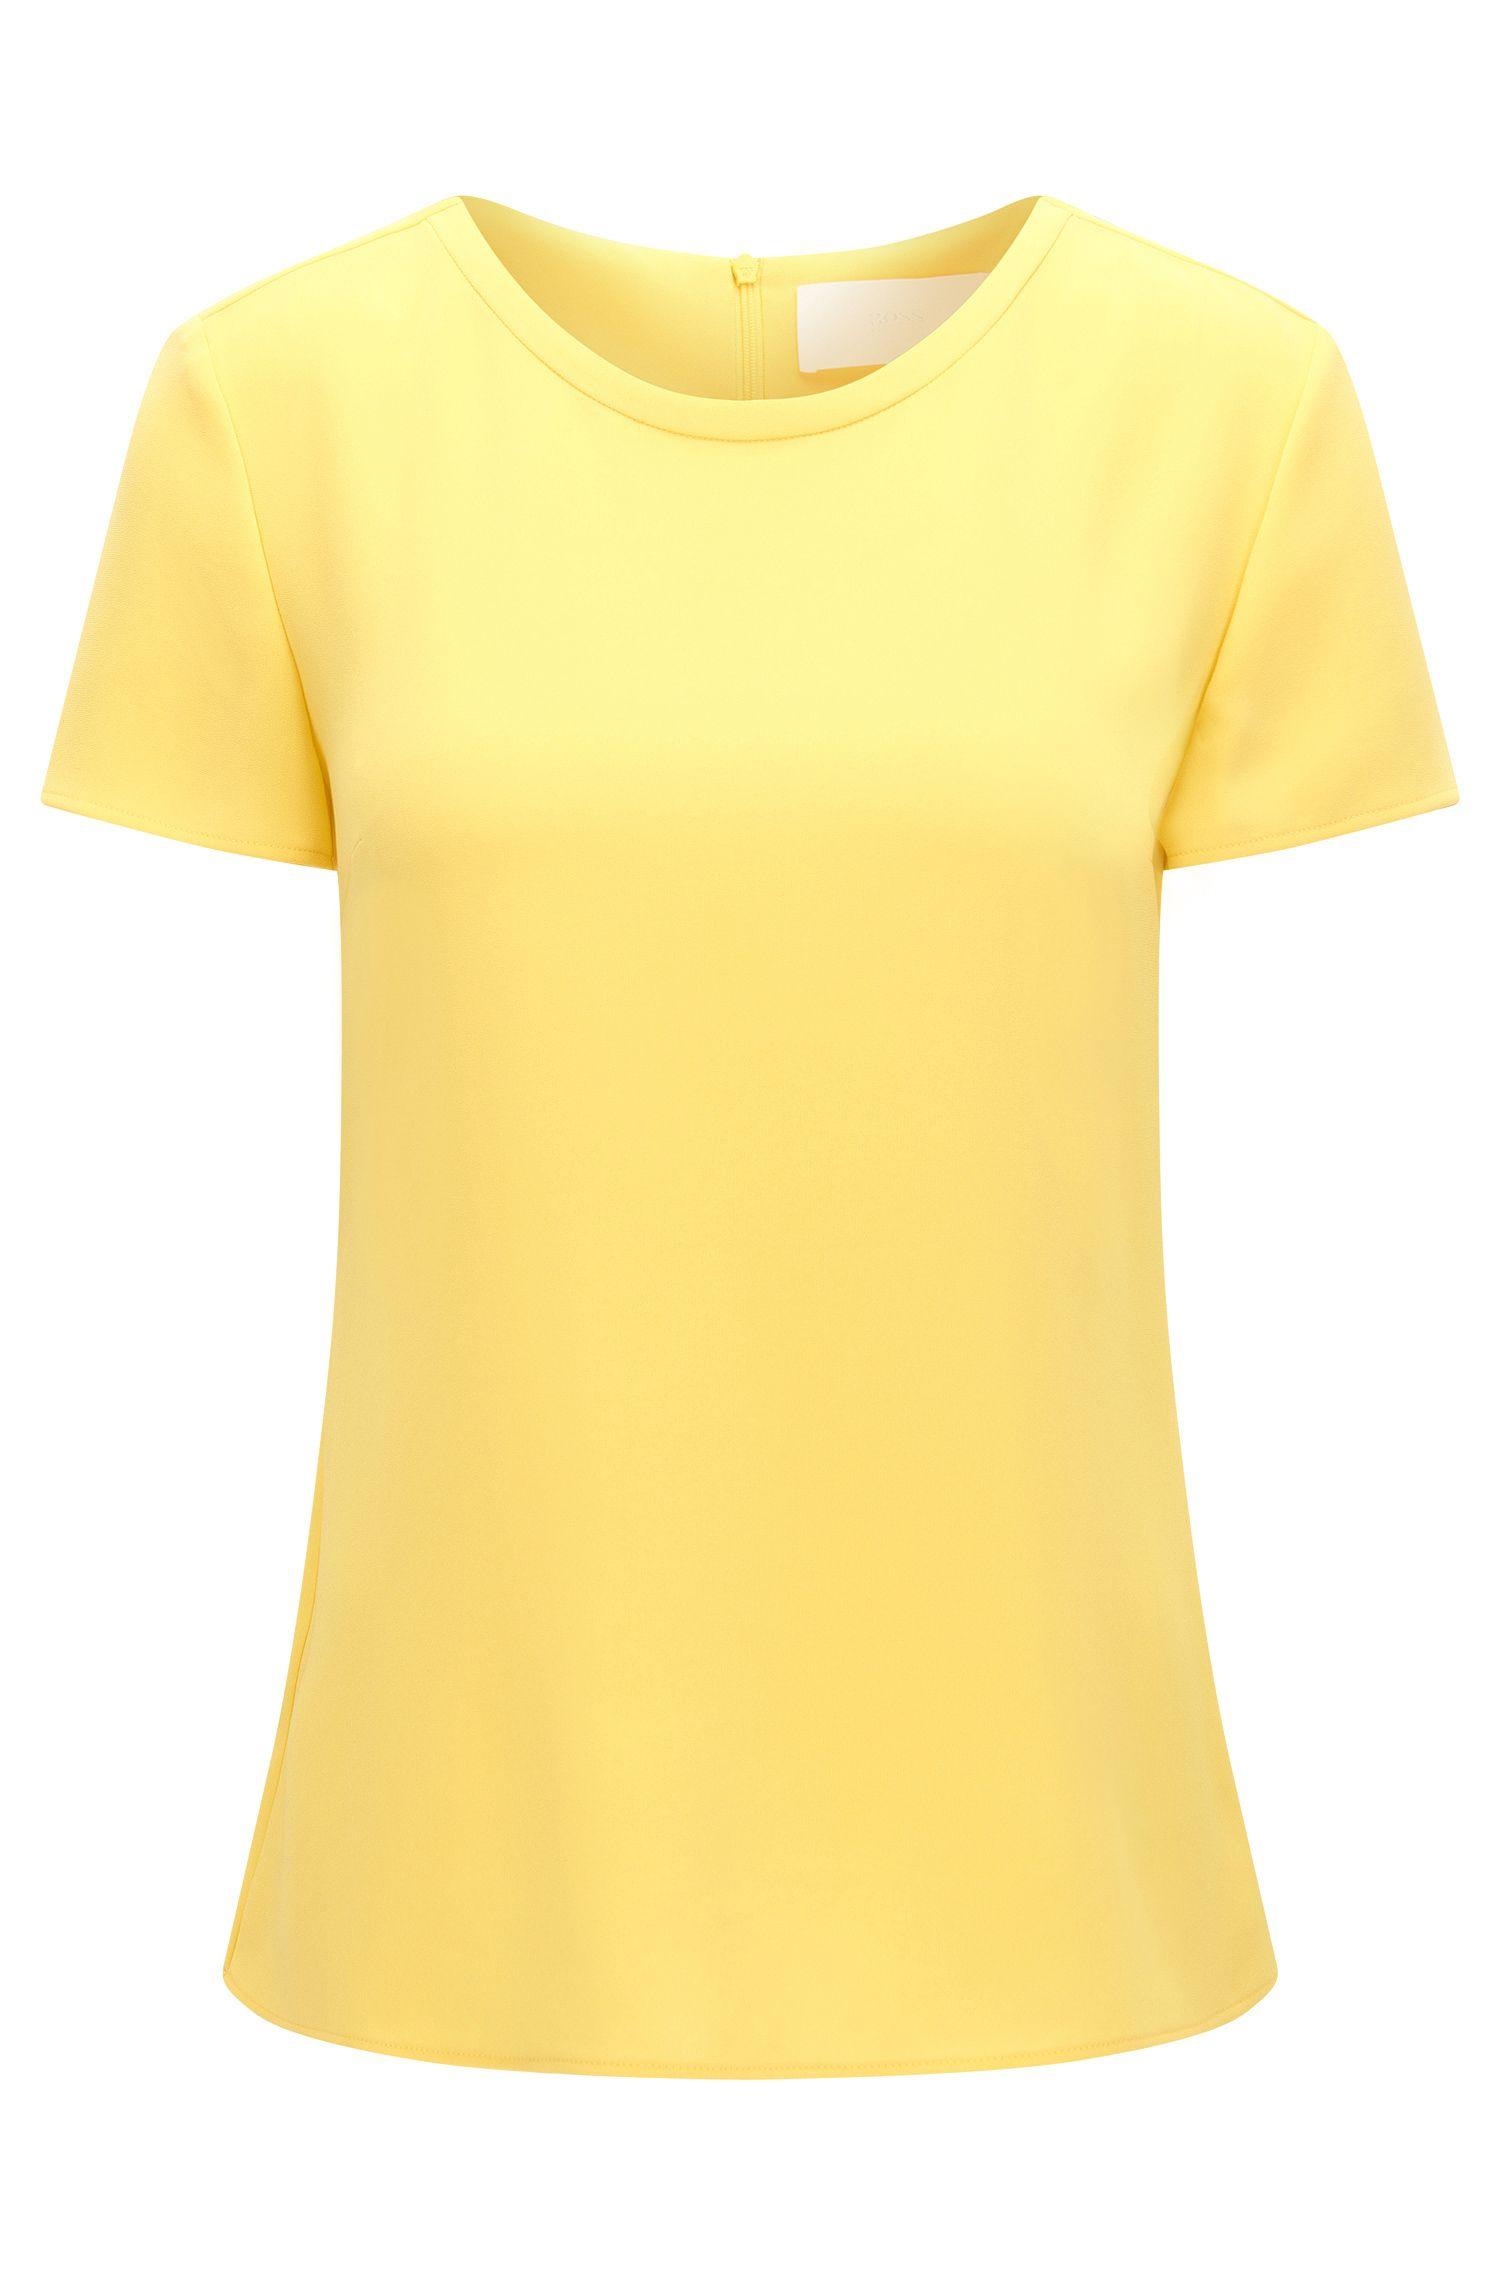 Gently tailored crepe top by BOSS Womenswear Fundamentals